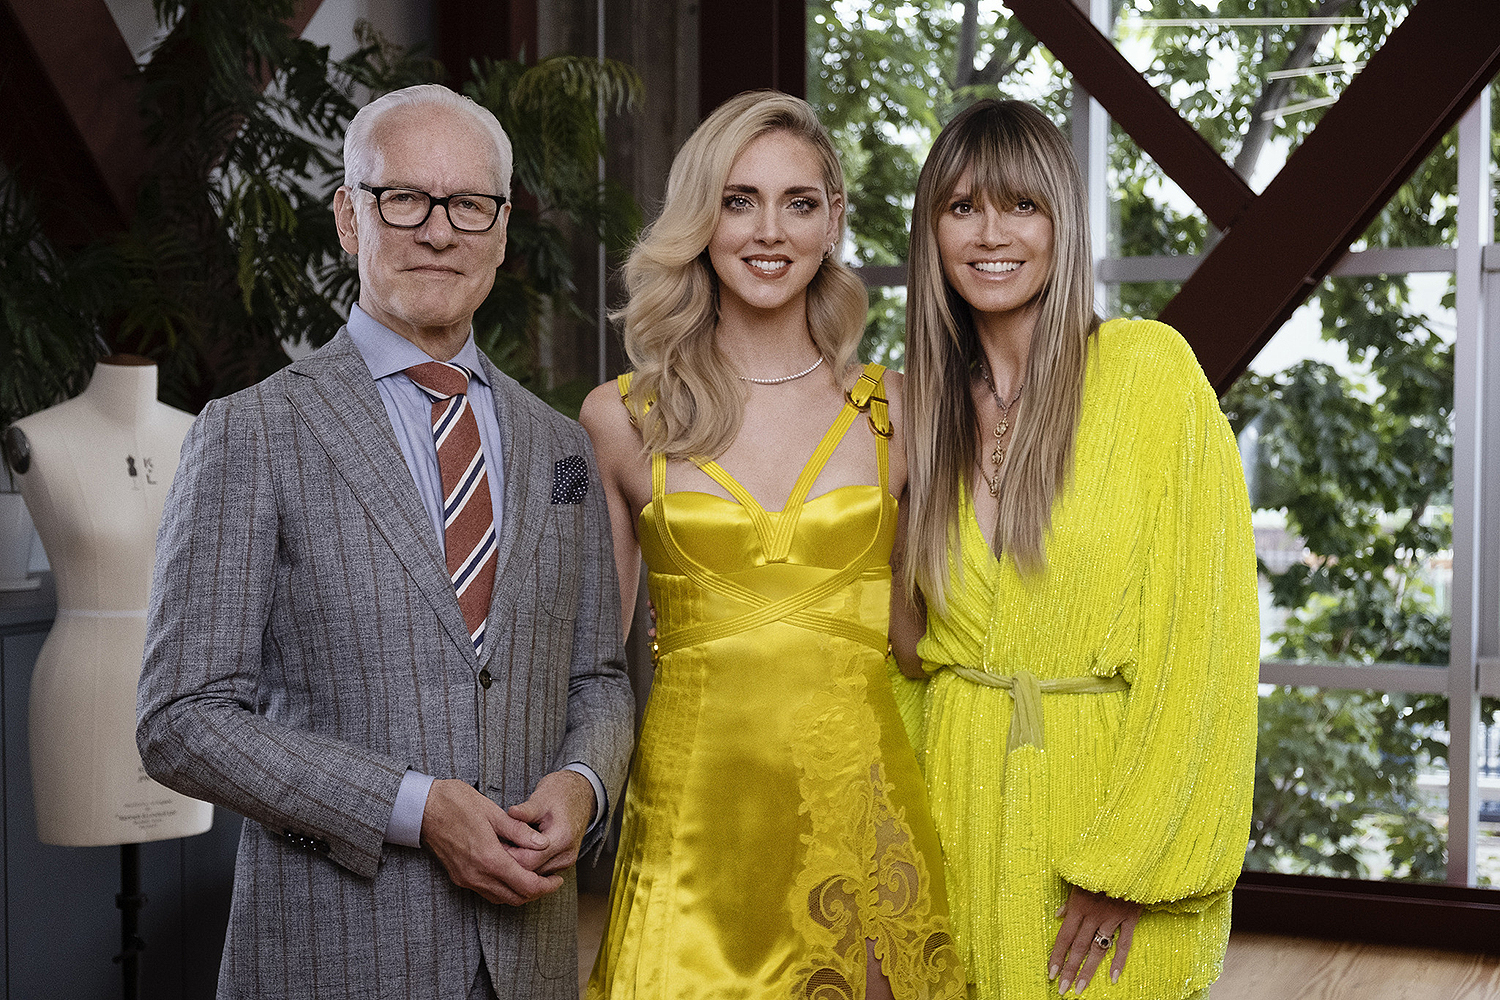 amazon prime video Making The Cut tim gunn chiara ferragni heidi klum